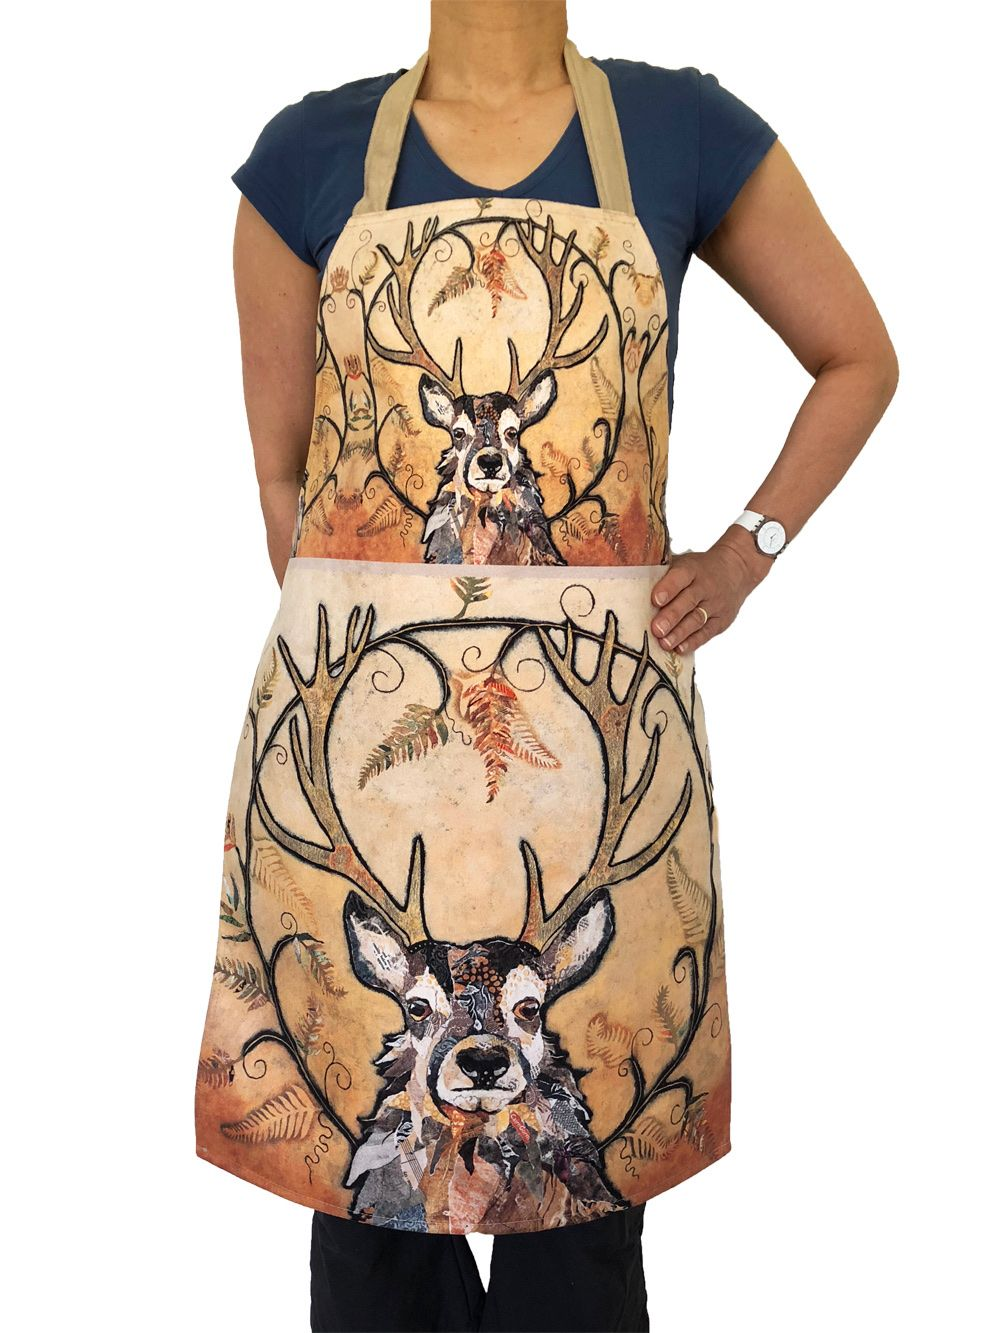 Luxury Stag Apron Handmade in UK by Dawn Maciocia